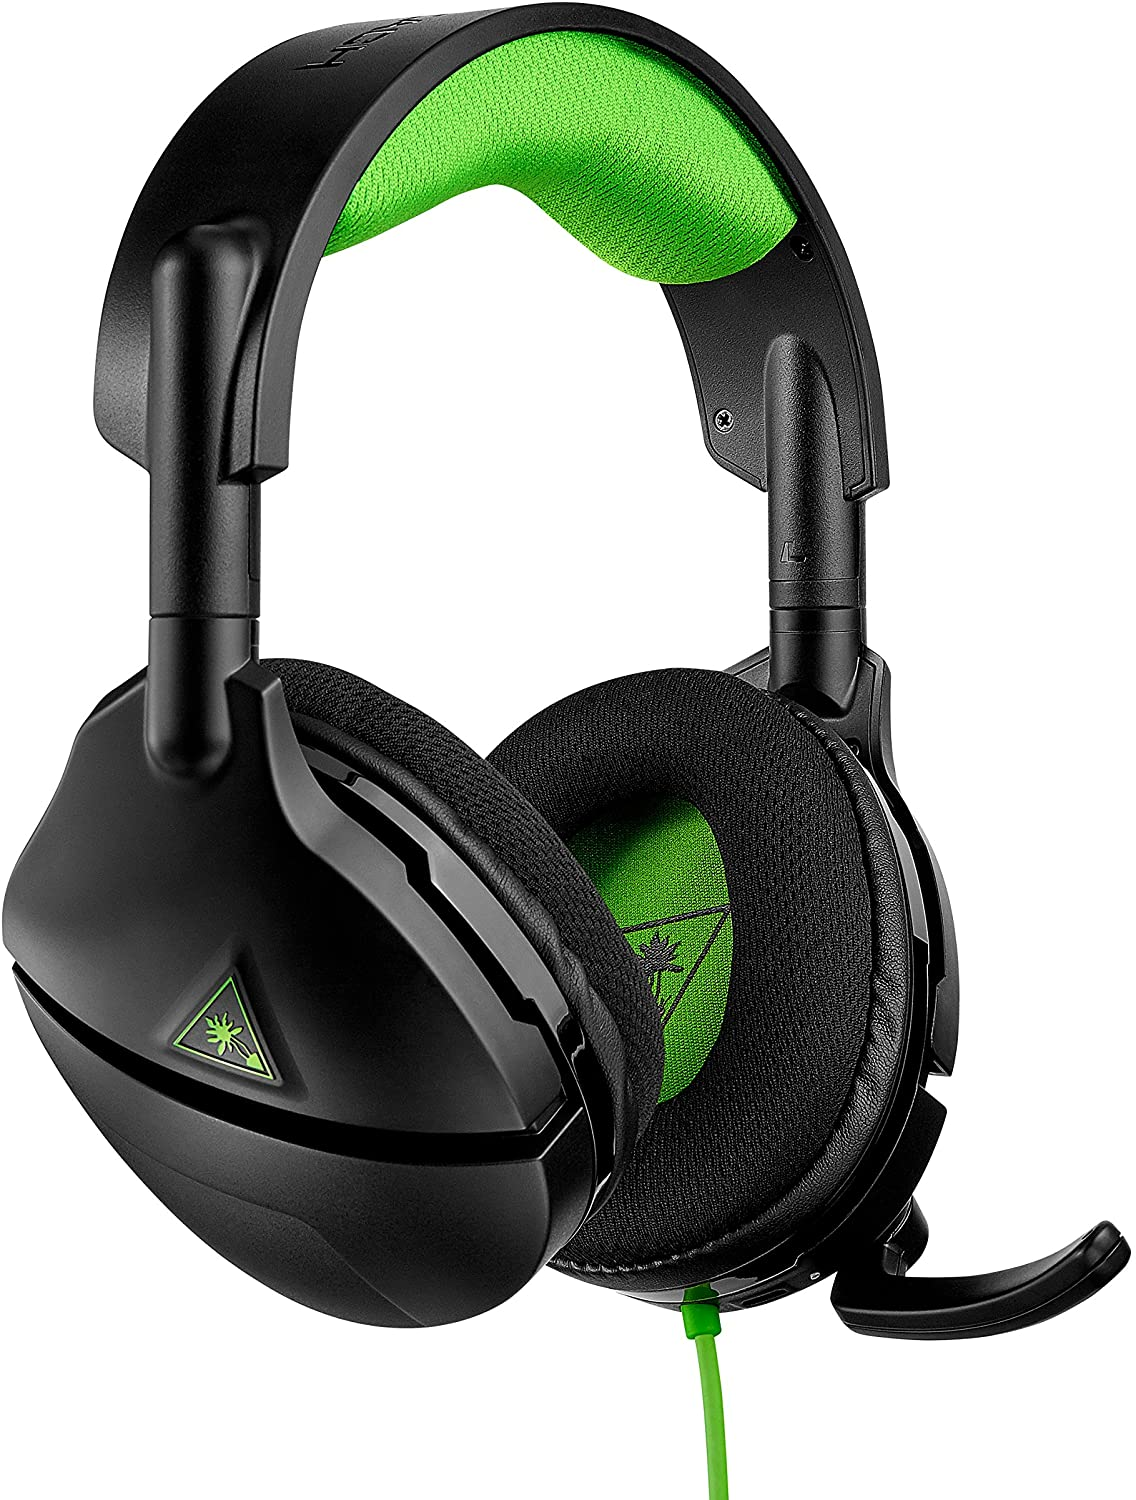 Turtle Beach Stealth 300 Gaming Headset